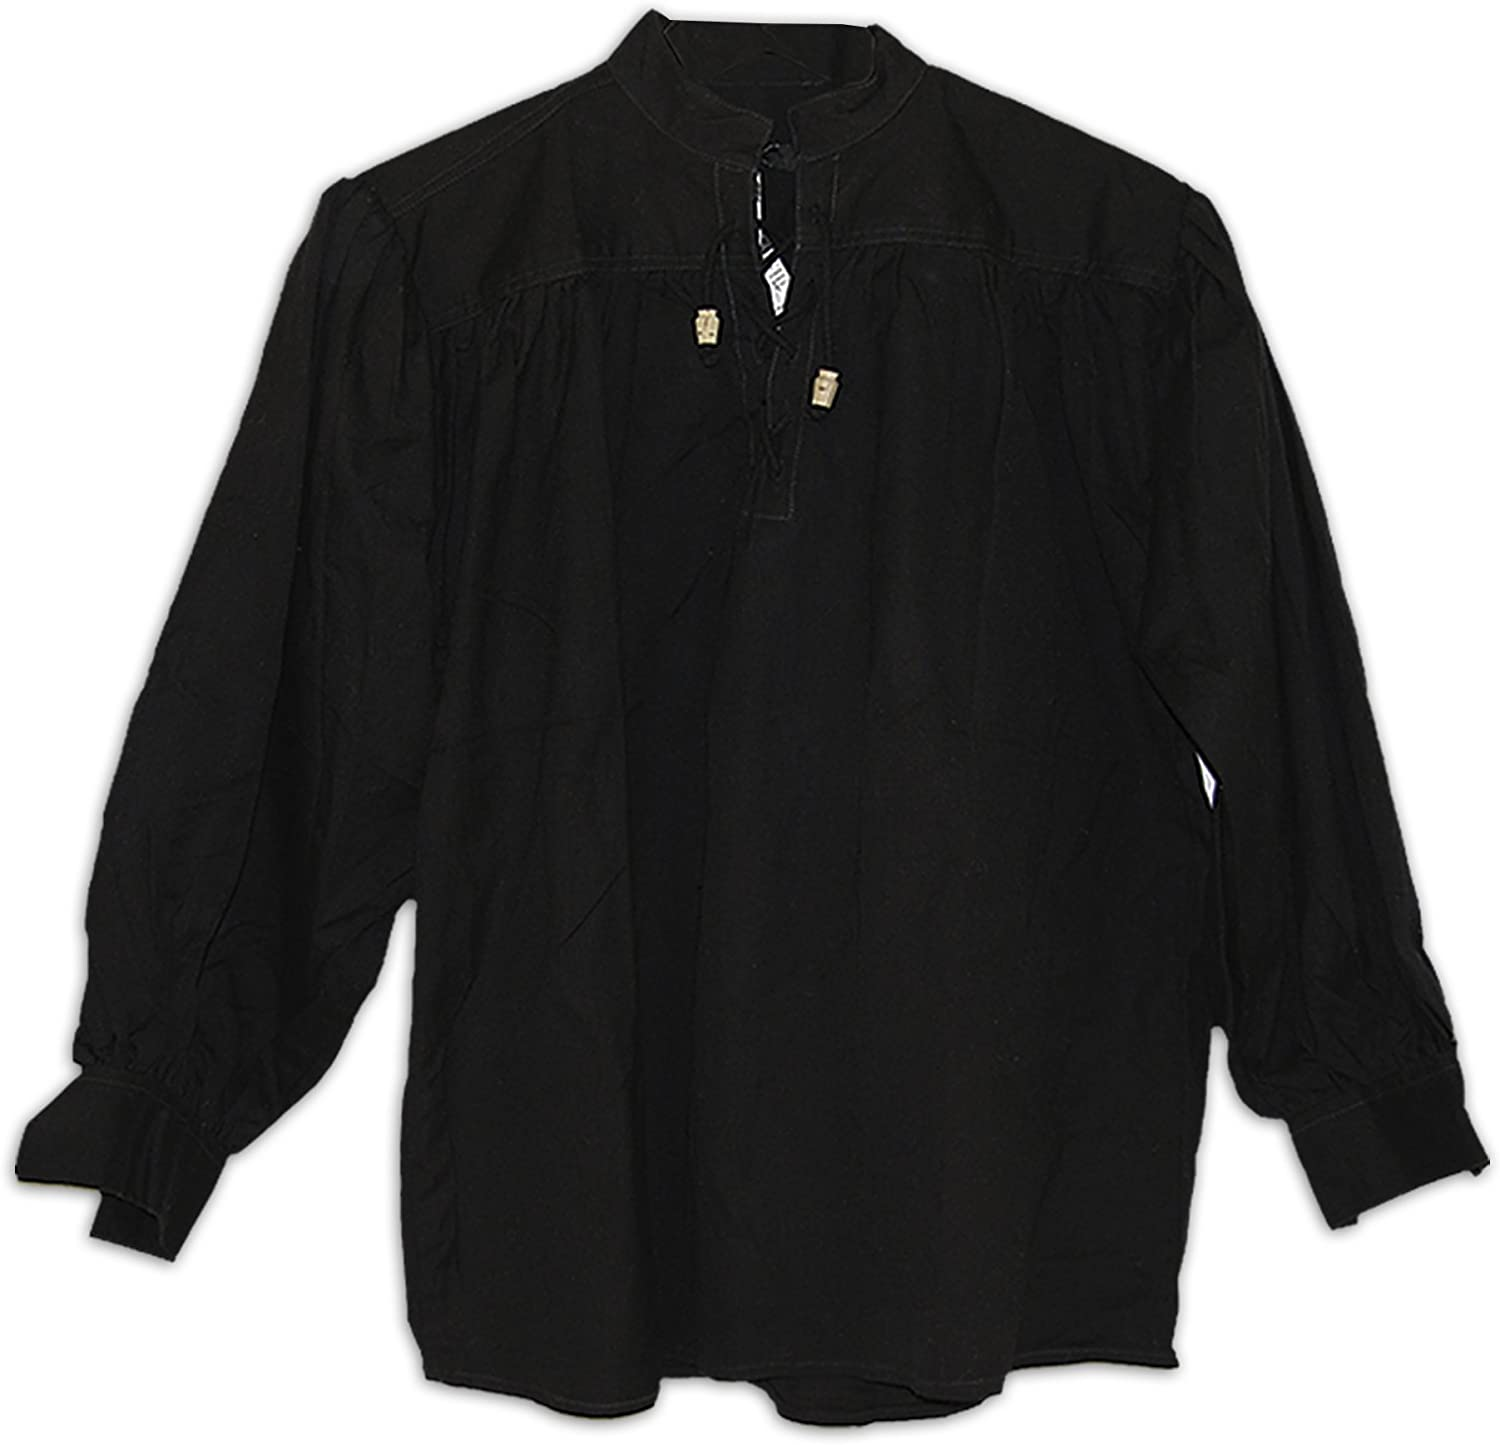 GDFB Cotton Gorgeous Shirt Collarless Laced W Toggles Mail order cheap